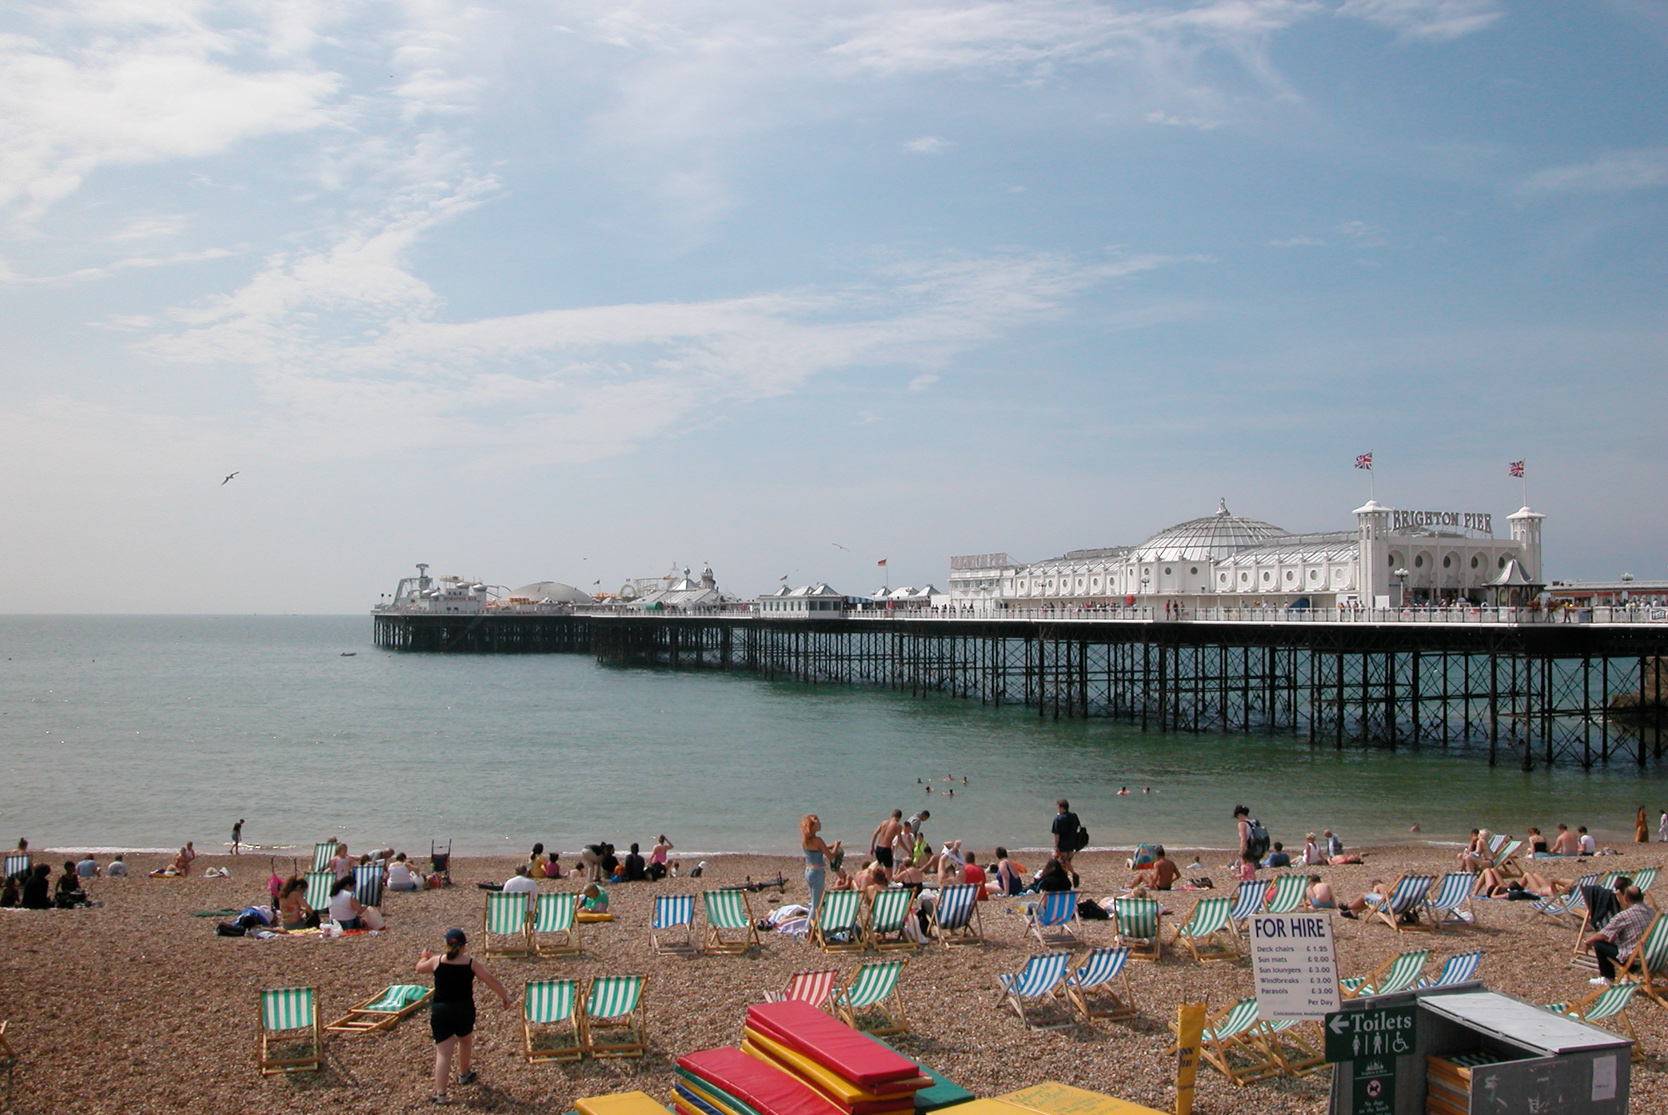 Brighton Pier during the packed summer months